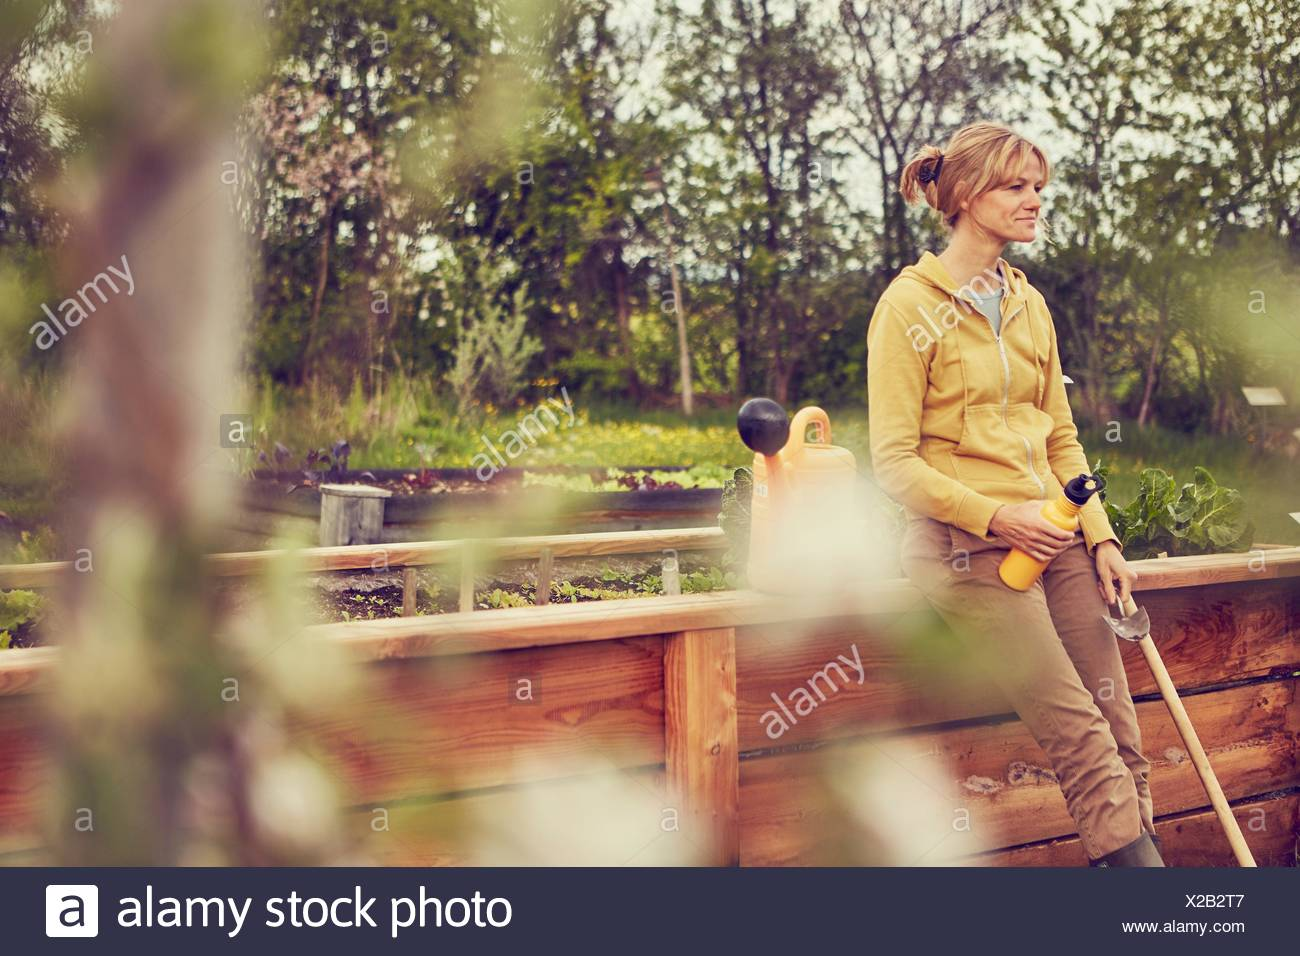 Mature woman, leaning against fence, taking a break from gardening, holding trowel and water bottle - Stock Image